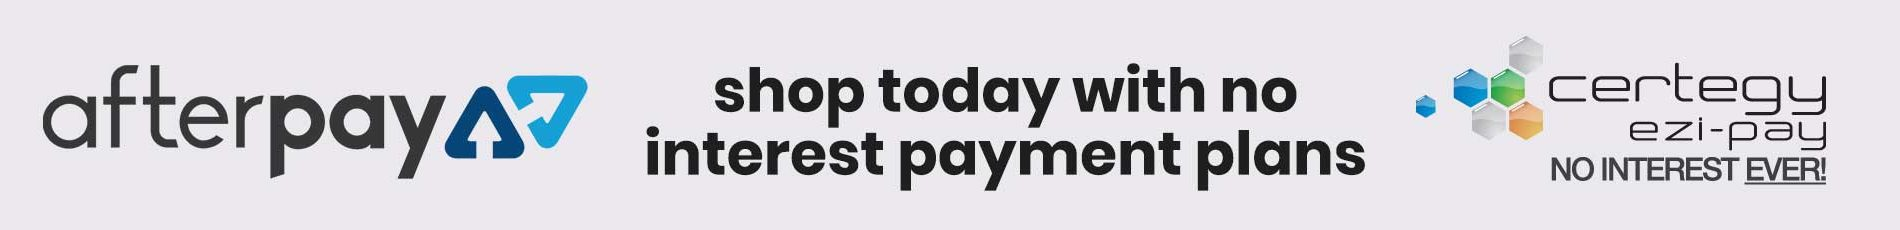 shop-with-interest-free-payment-plans-today